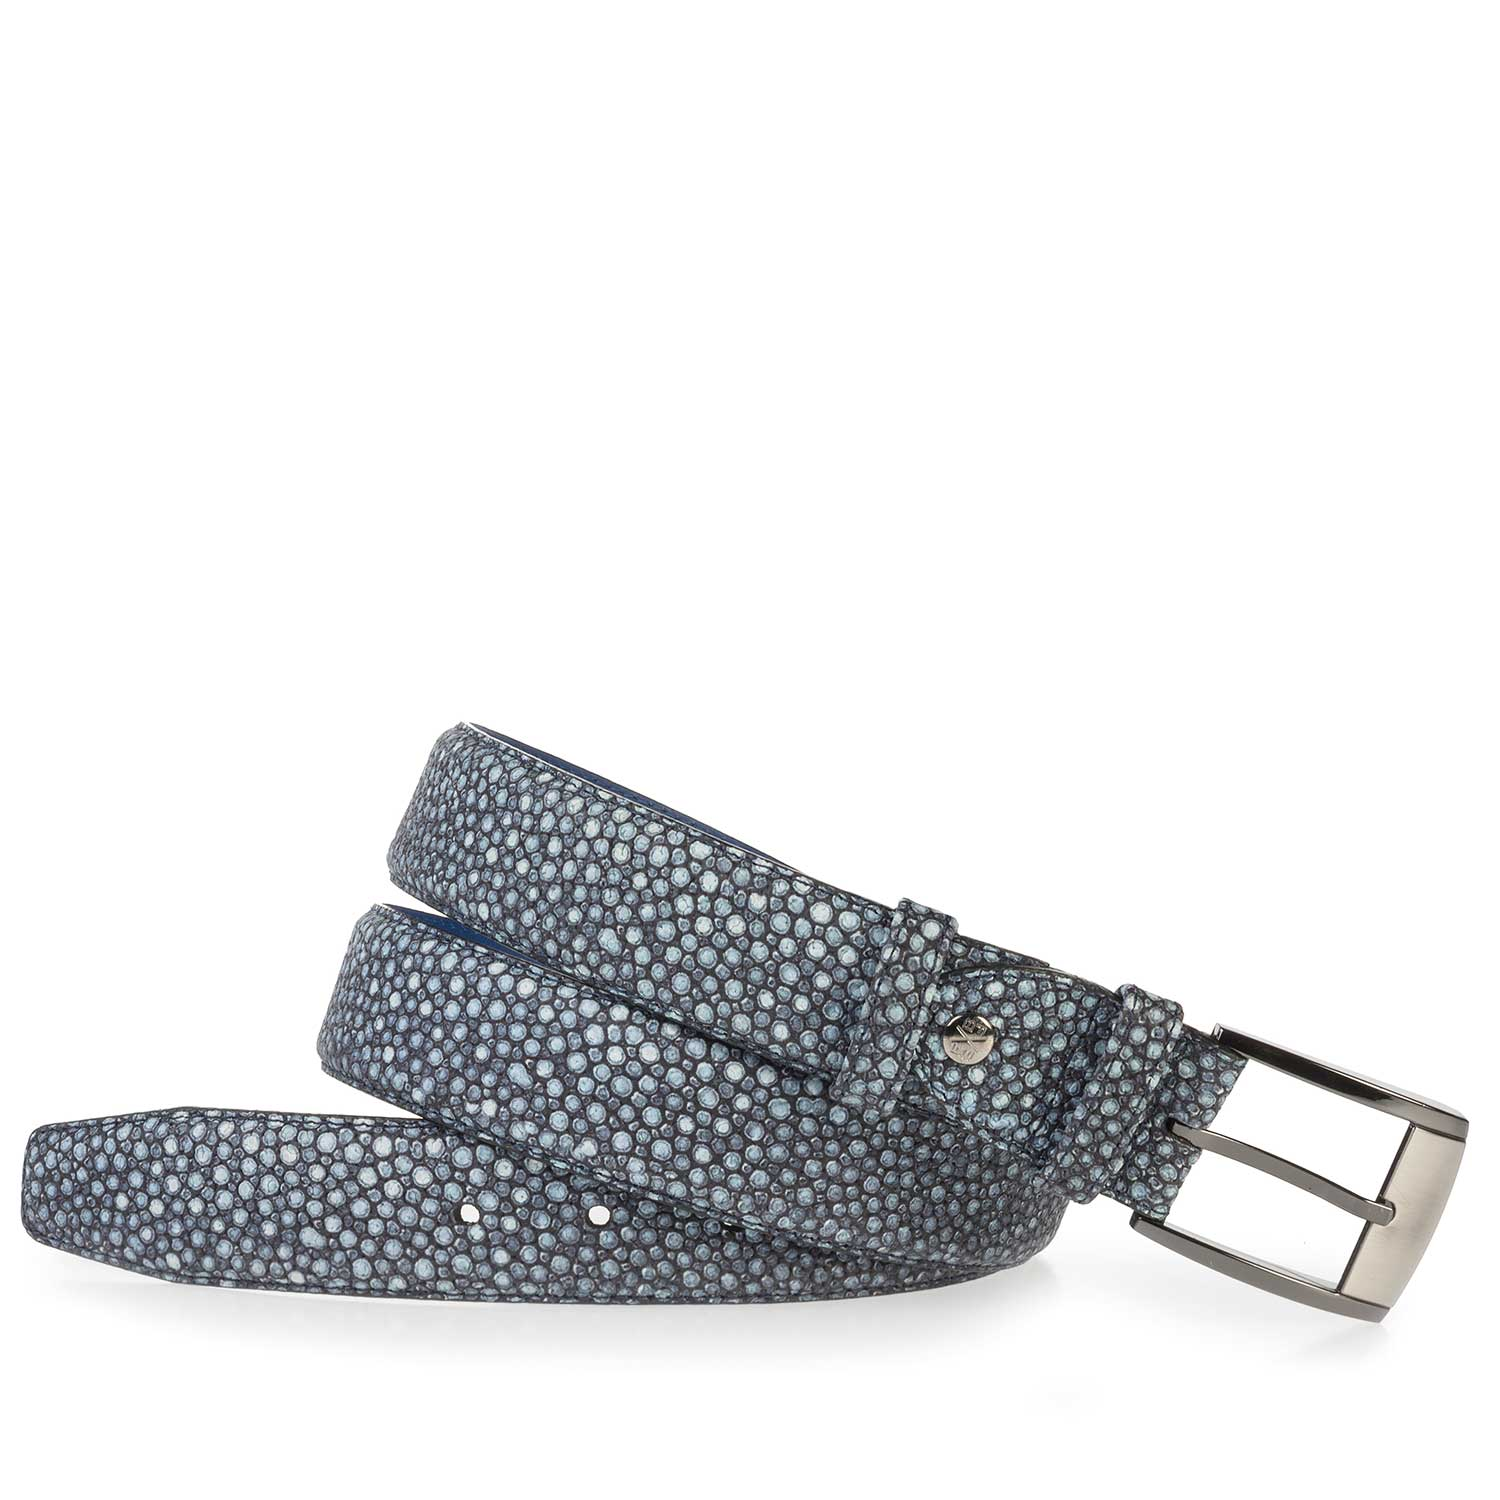 75180/13 - Blue, patterned leather belt